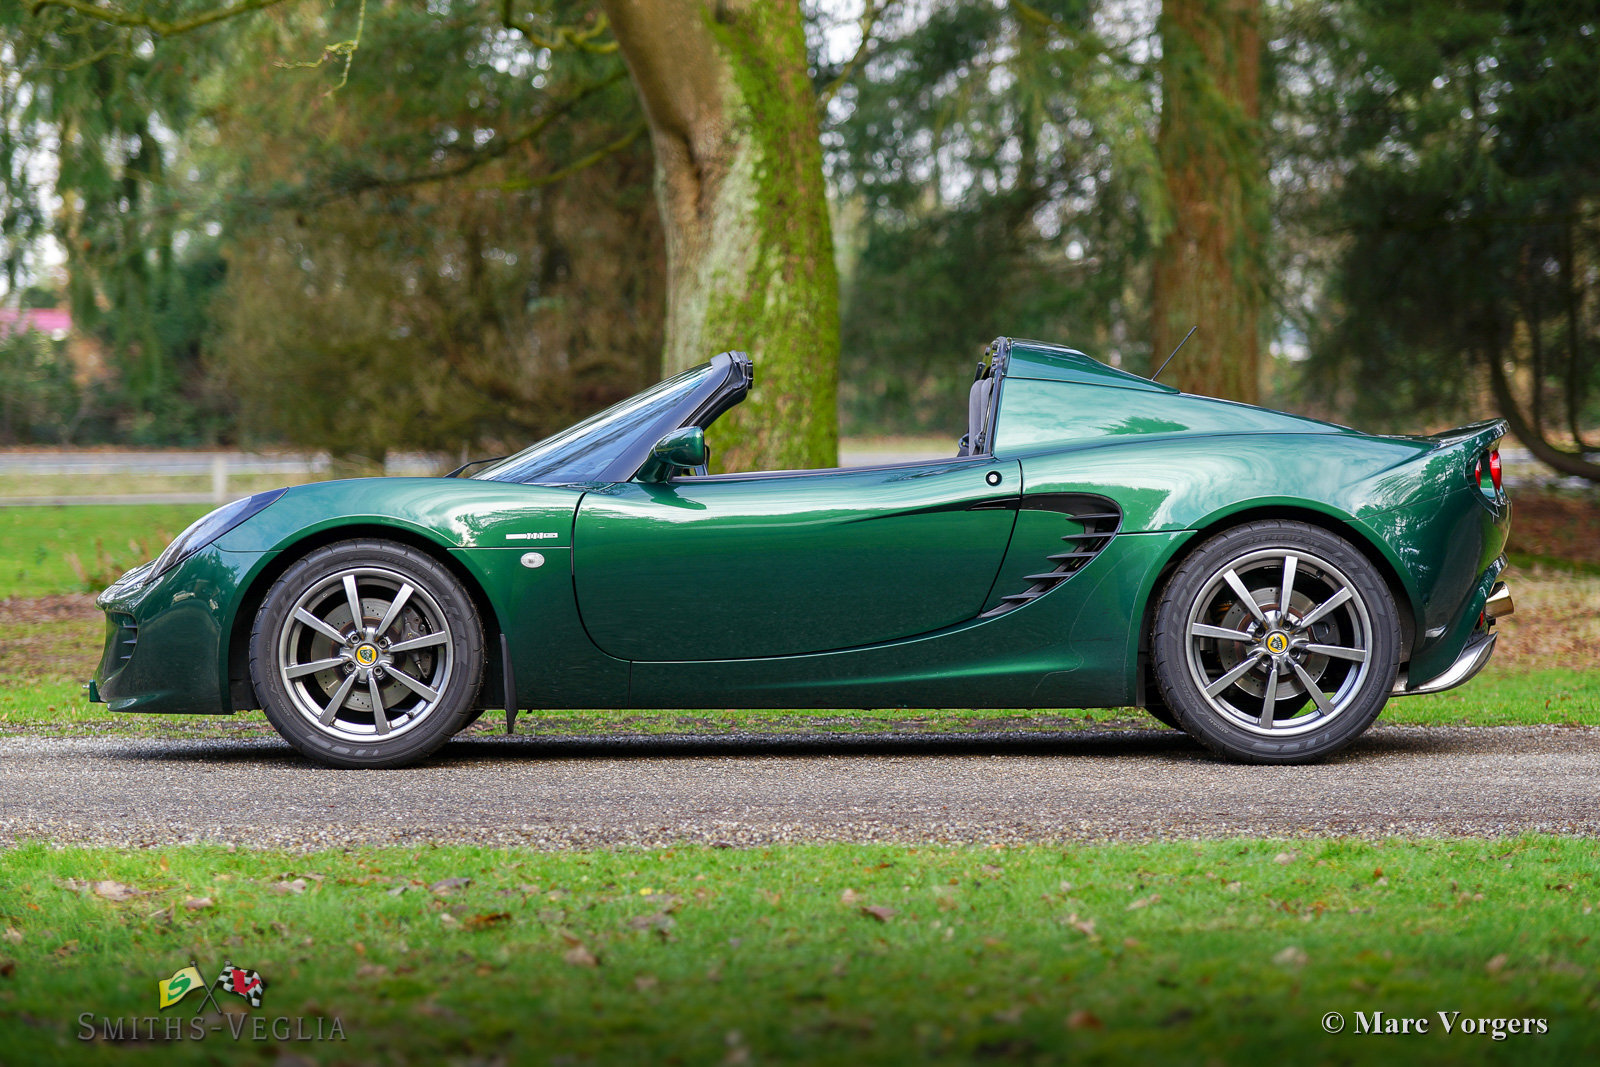 2003 Beautiful Lotus Elise 111S in a beautiful condition For Sale (picture 2 of 6)